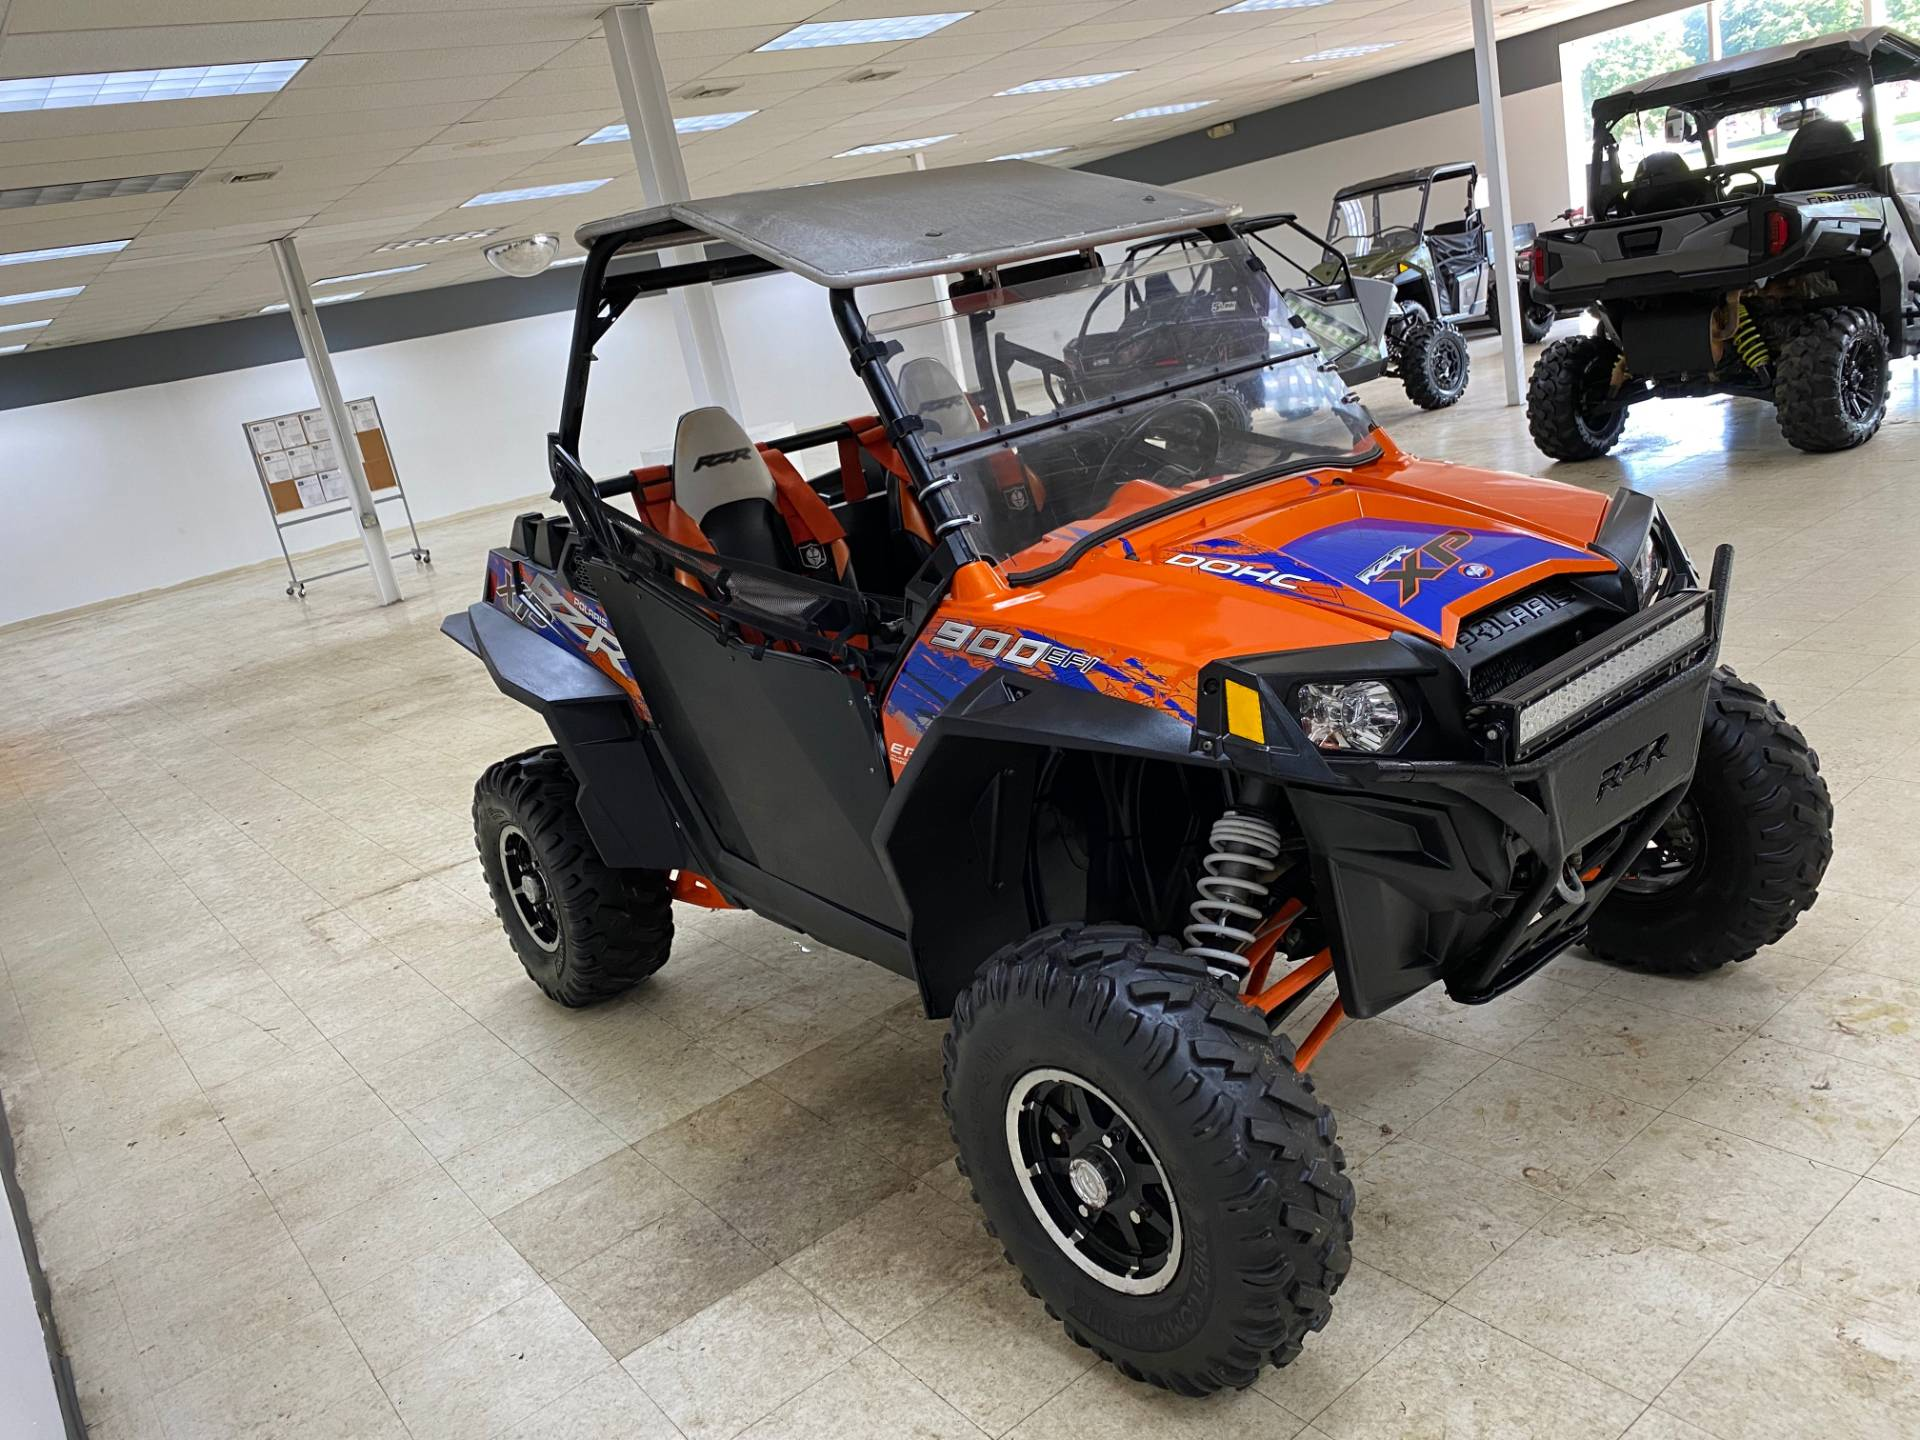 2013 Polaris RZR® XP 900 EPS LE in Herkimer, New York - Photo 9